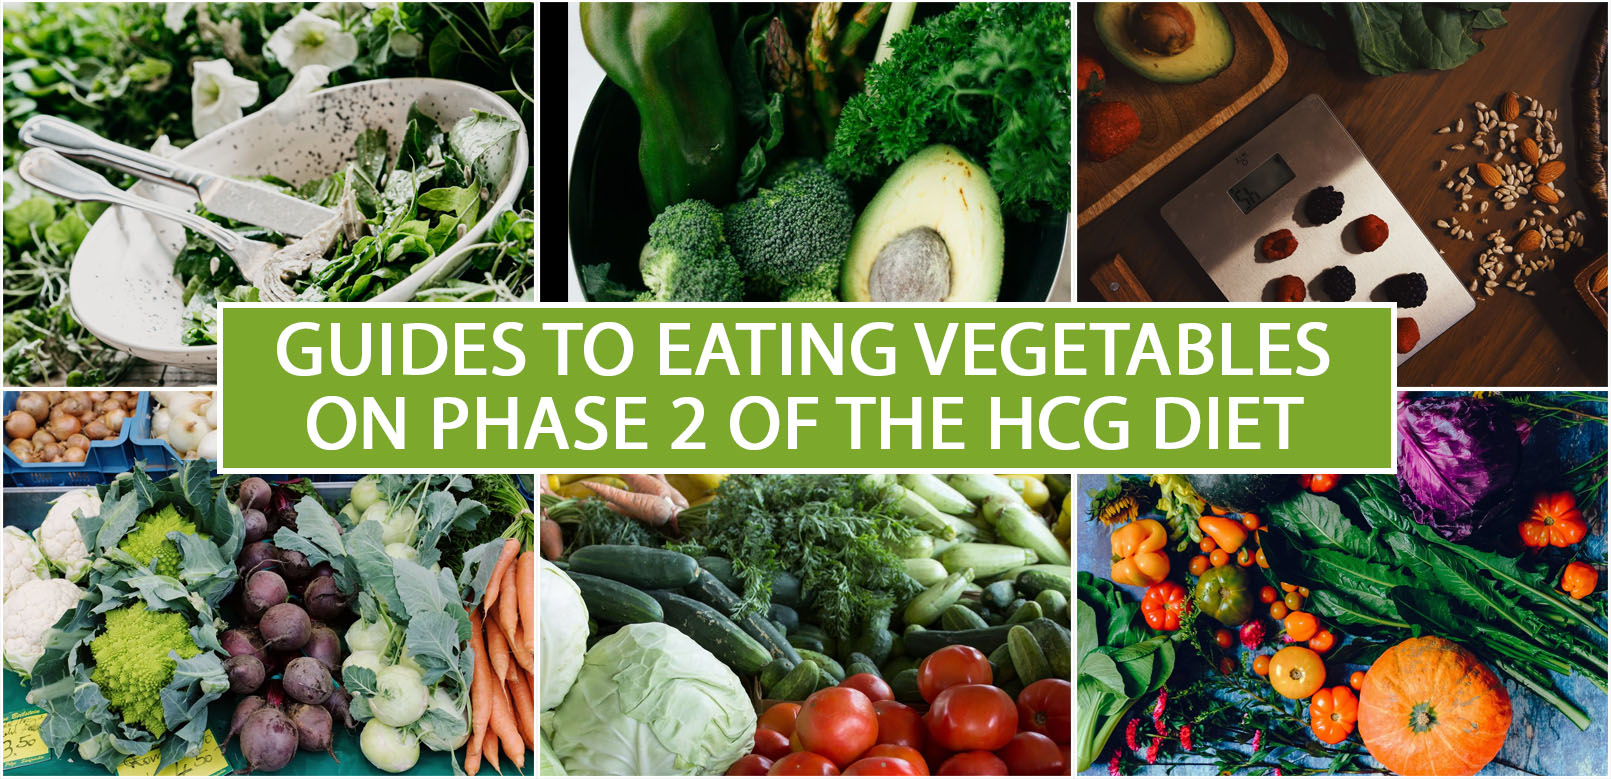 GUIDES TO EATING VEGETABLES ON PHASE 2 OF THE HCG DIET